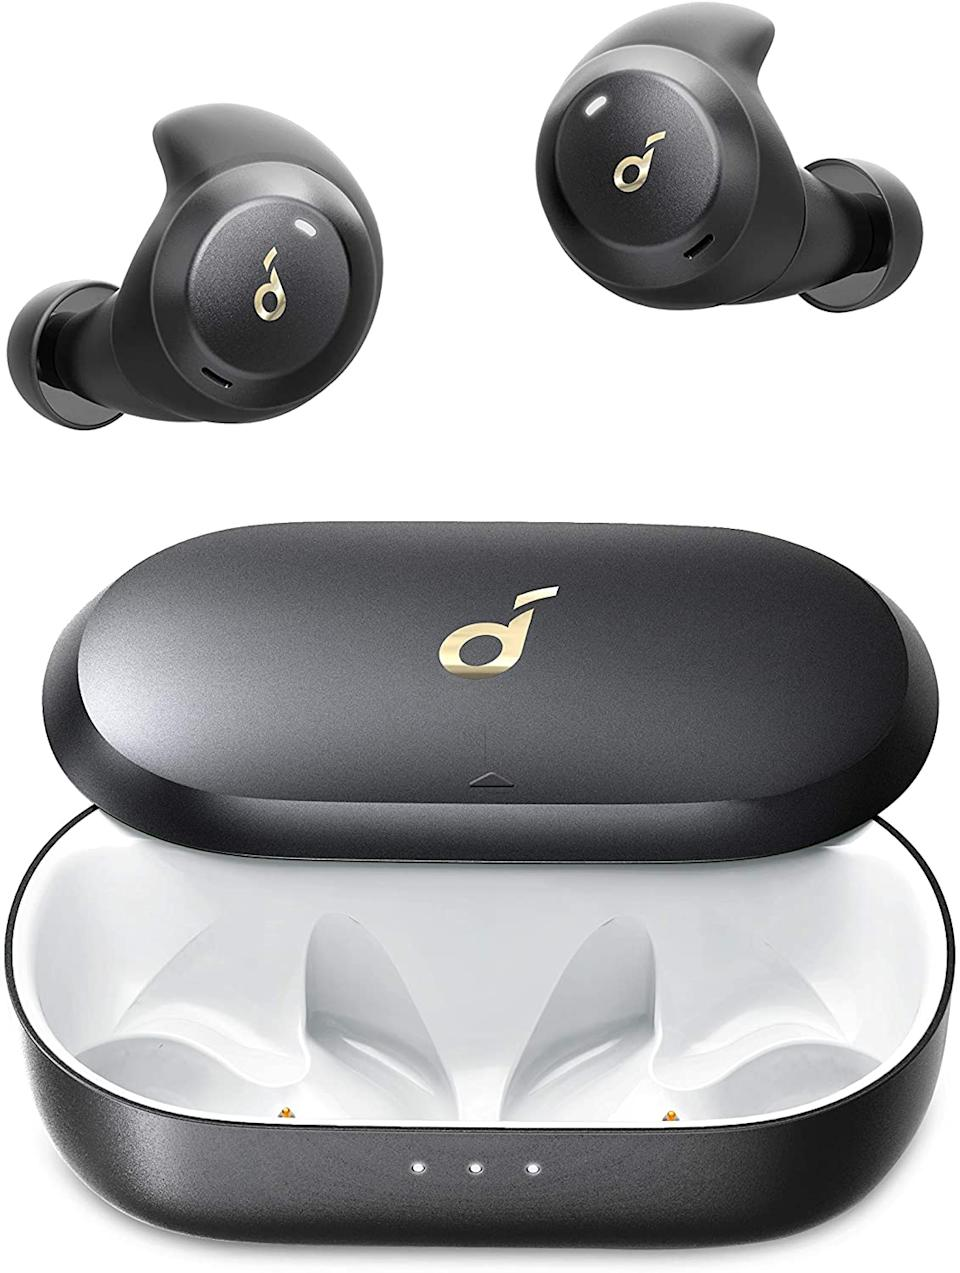 Anker Soundcore Spirit Dot 2 True Wireless Earbuds. Image via Amazon.